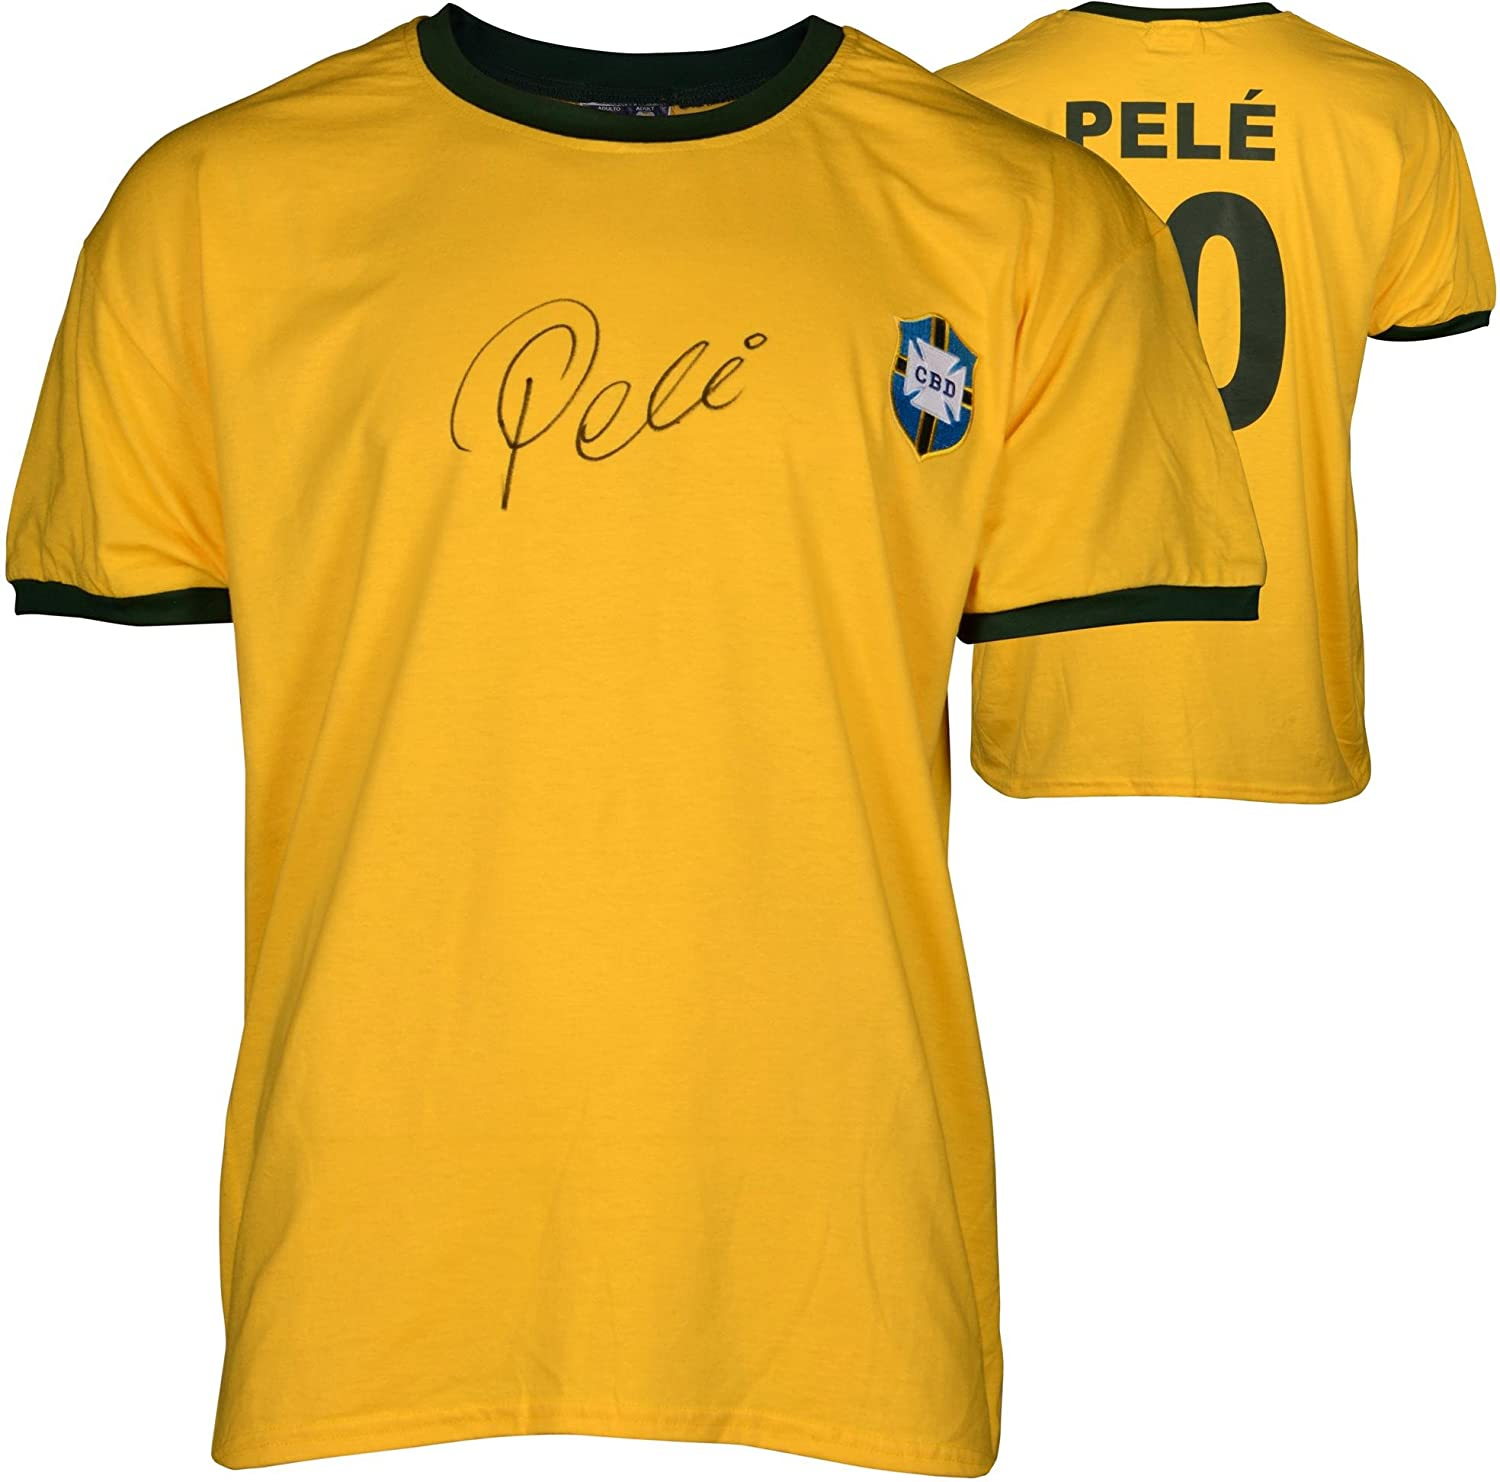 Pele Signed Toffs Brazil National Team Yellow Jersey - Fanatics Authentic Certified - Autographed Soccer Jerseys